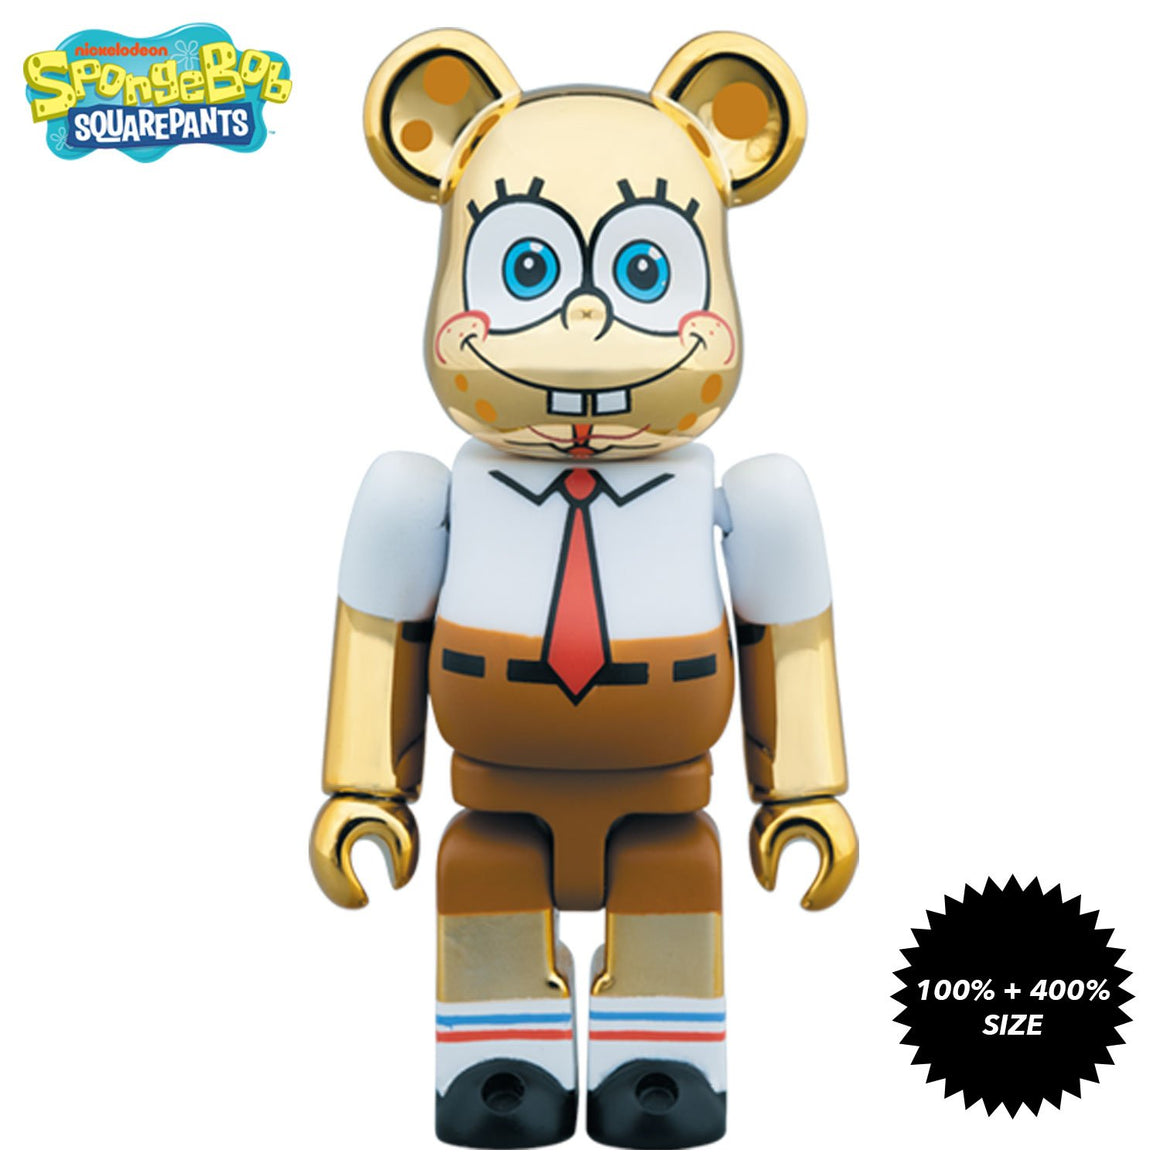 Chrome Gold Spongebob Squarepants 100% + 400% Bearbrick Set by Medicom Toy